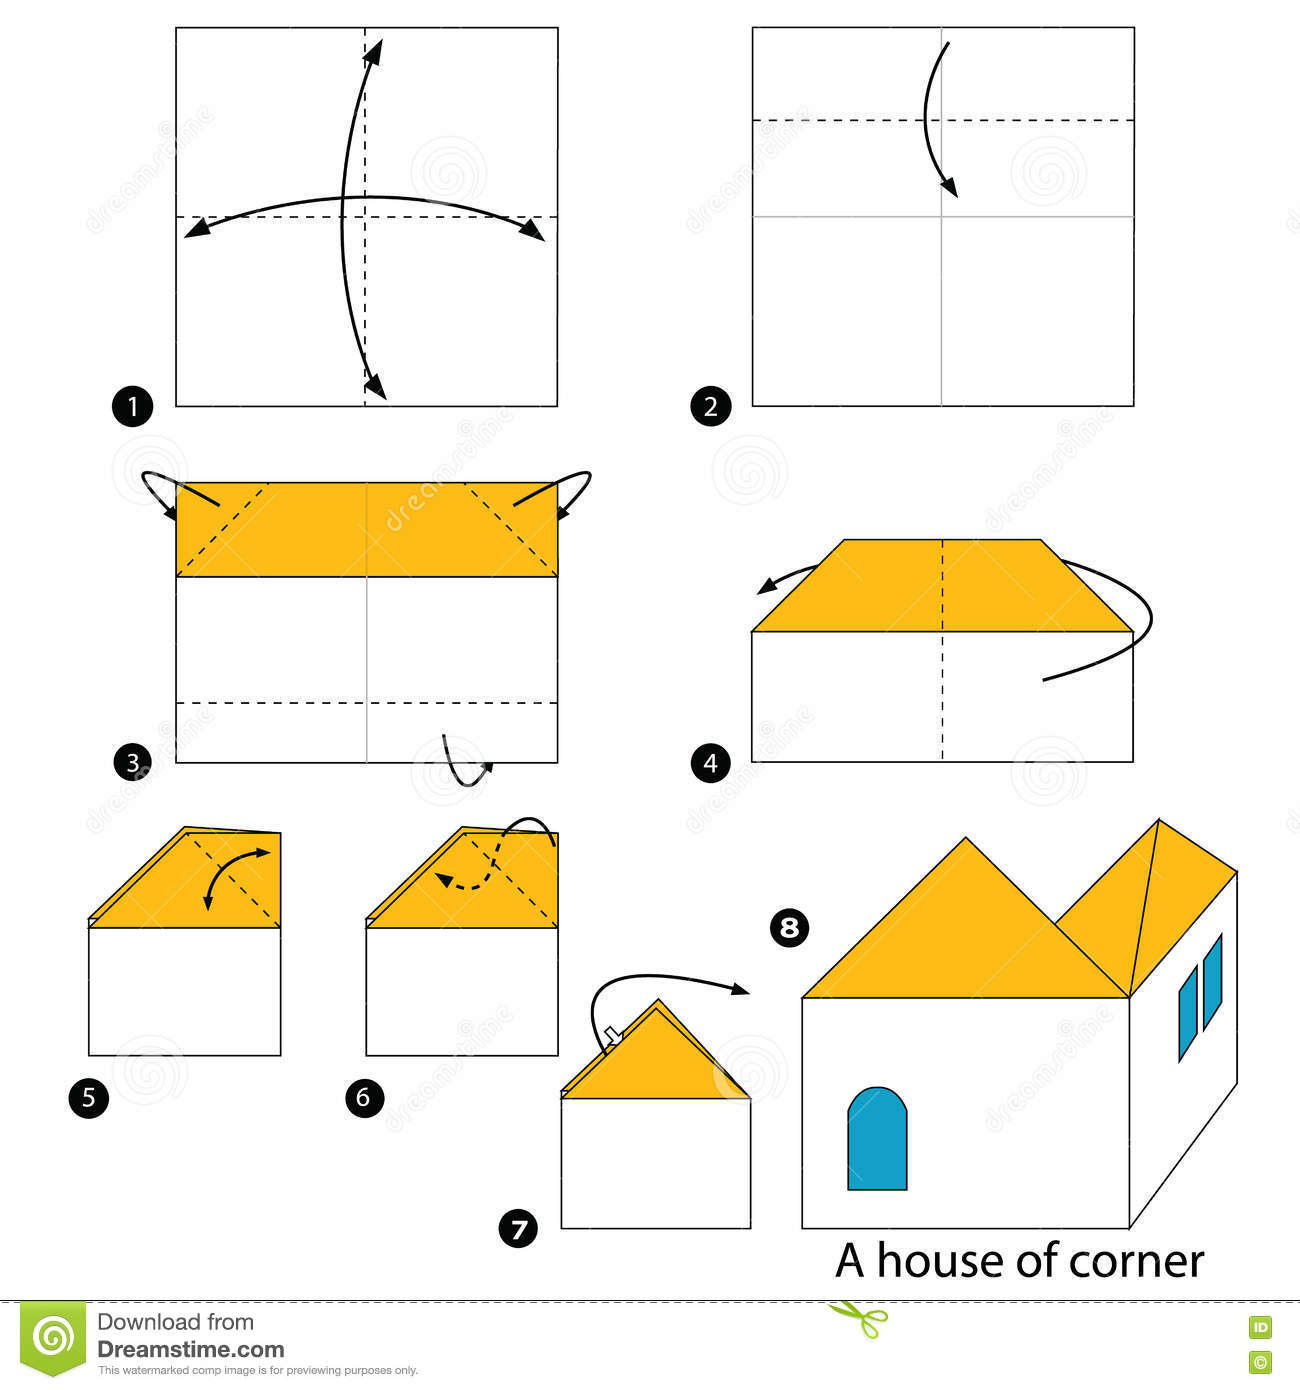 Origami House Diagram Not Lossing Wiring Instructions Step By How To Make A Of Corner Rh Dreamstime Com School Diagrams